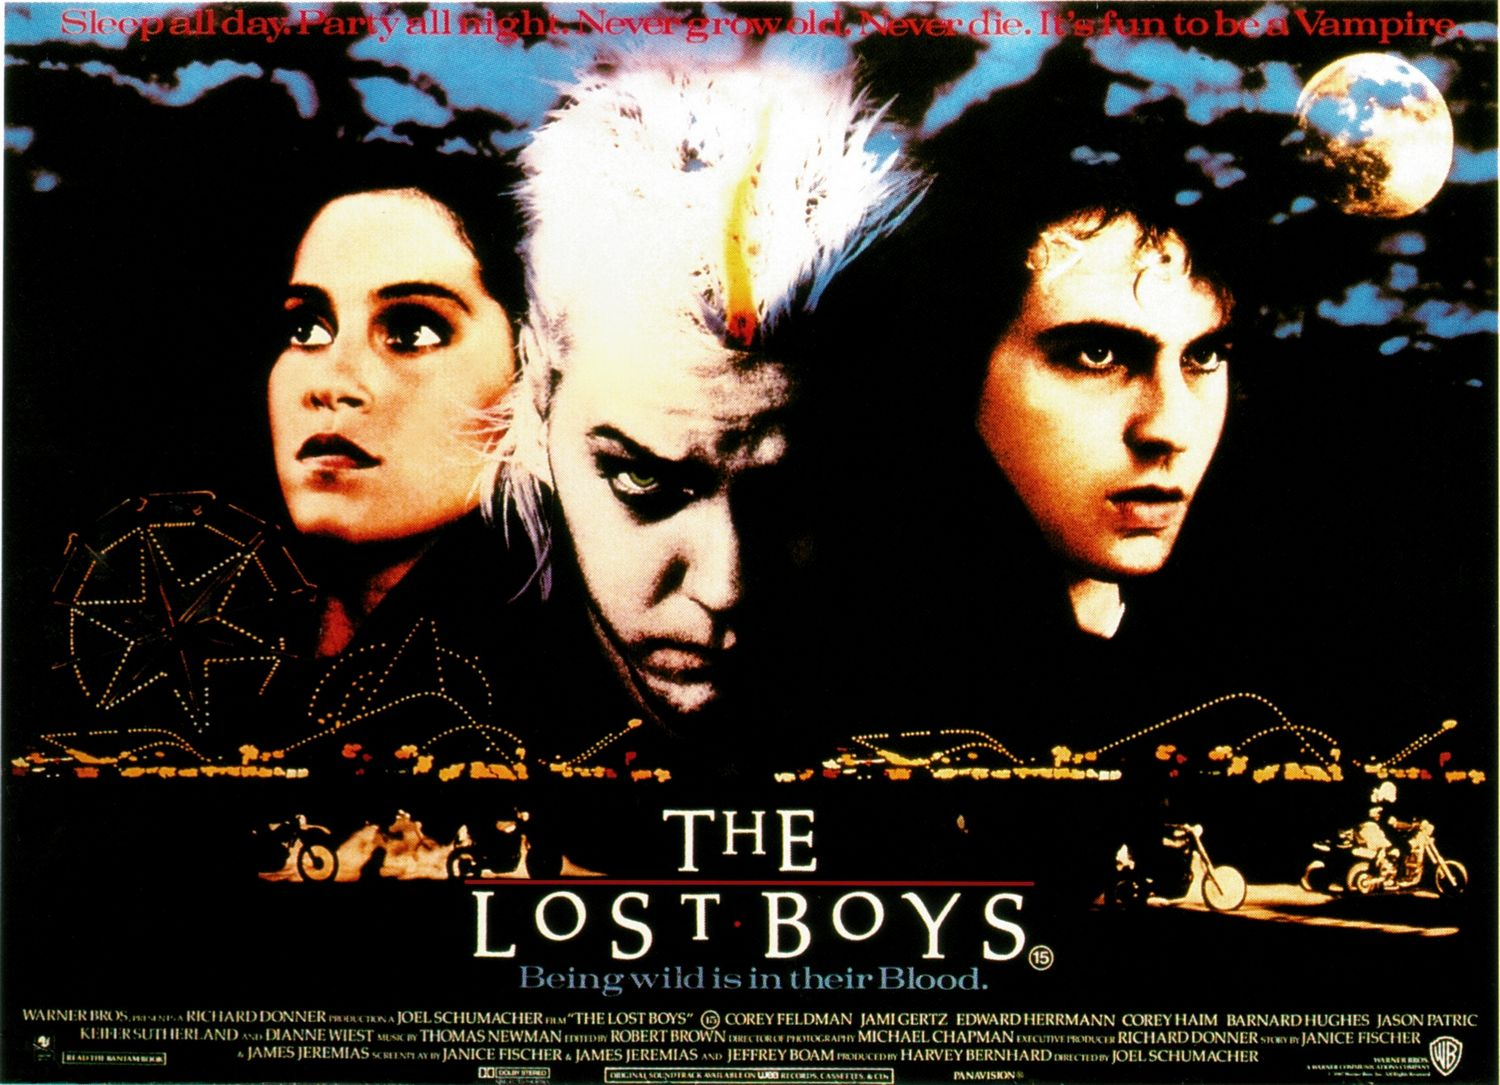 The Lost Boys Movie images download HD wallpaper and background 1500x1085